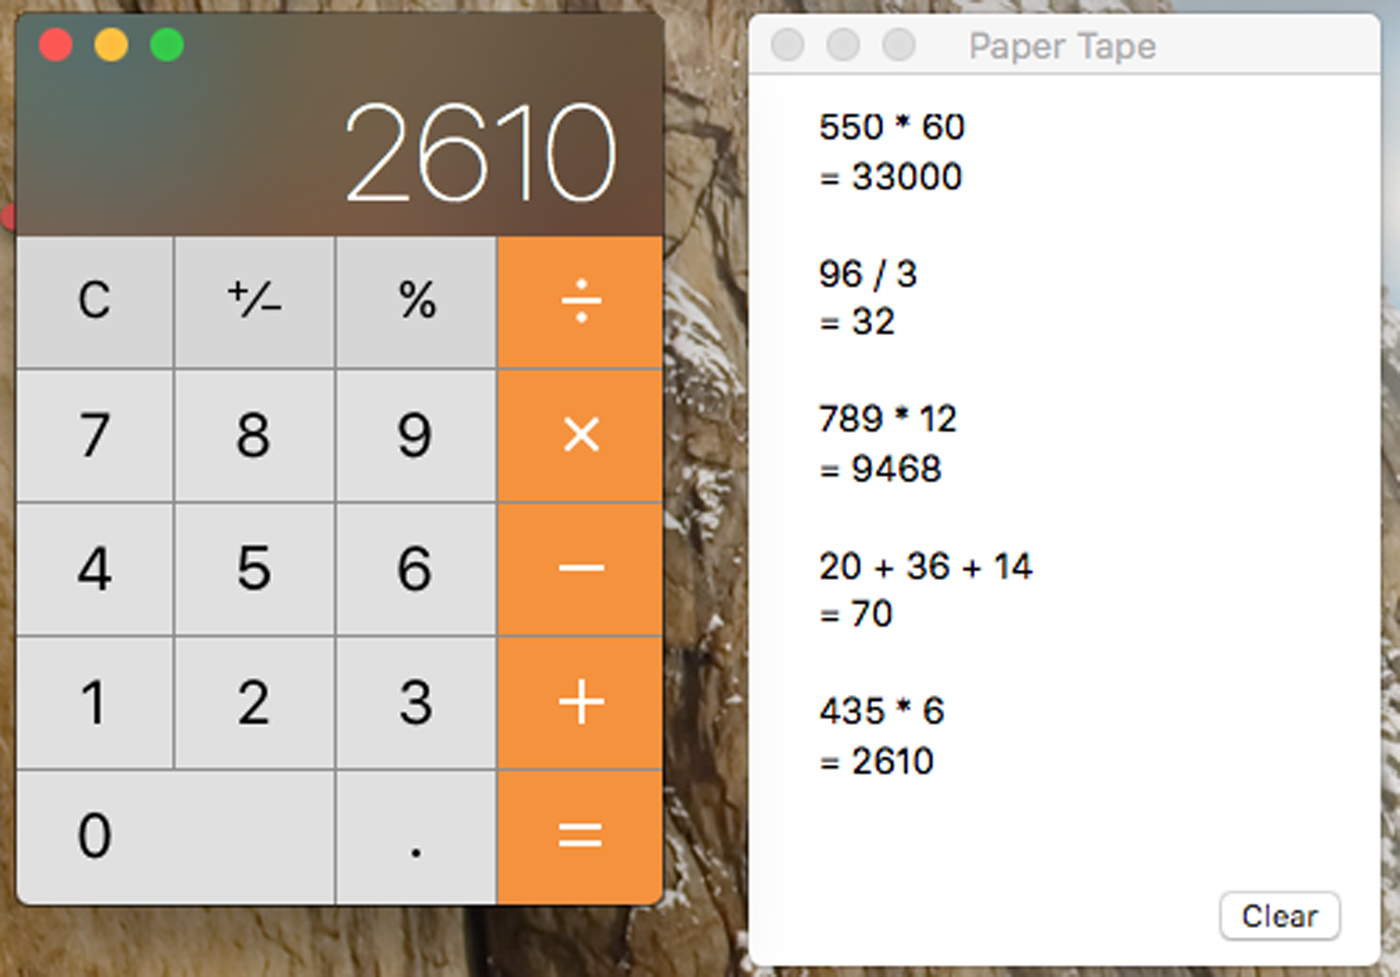 mac calculator app with tape